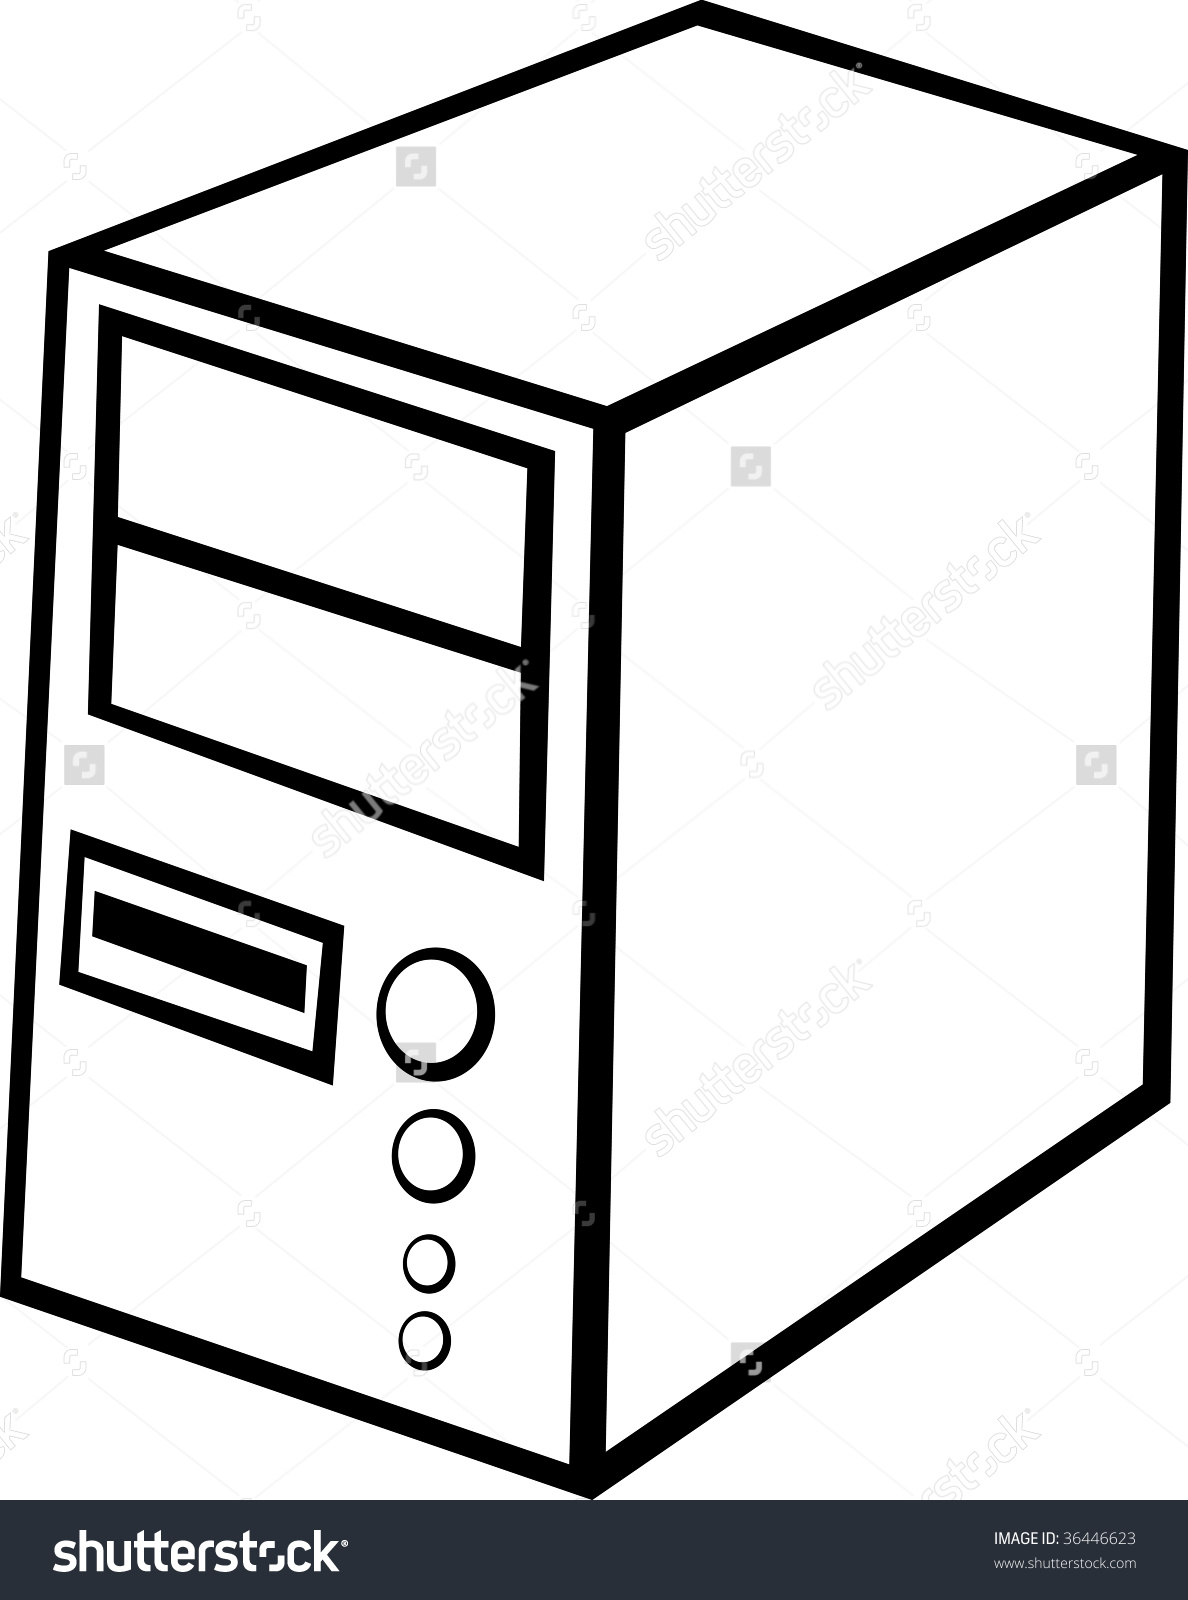 Cpu clipart black and white 4 » Clipart Station.